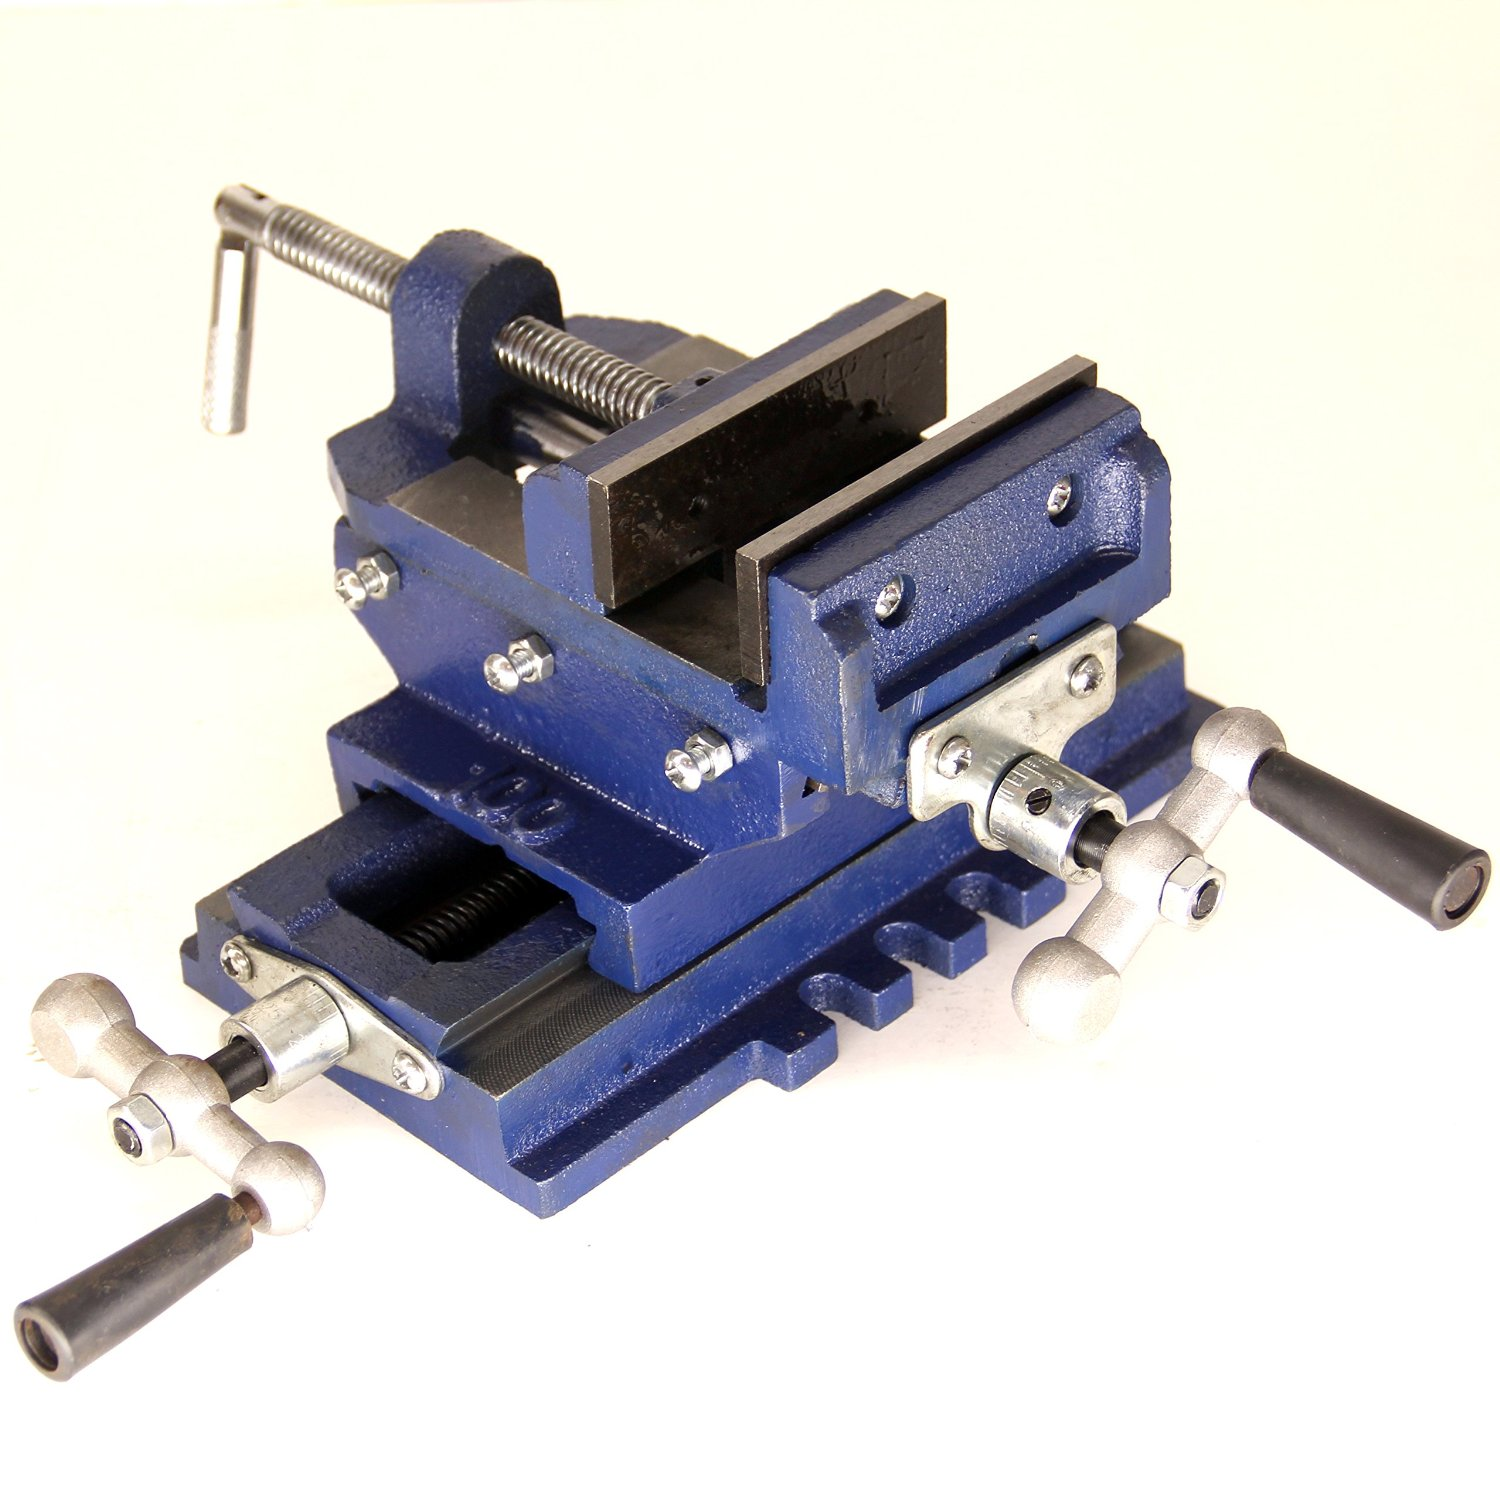 Hardware Factory Store 2 Way 4-Inch Drill Press X-Y